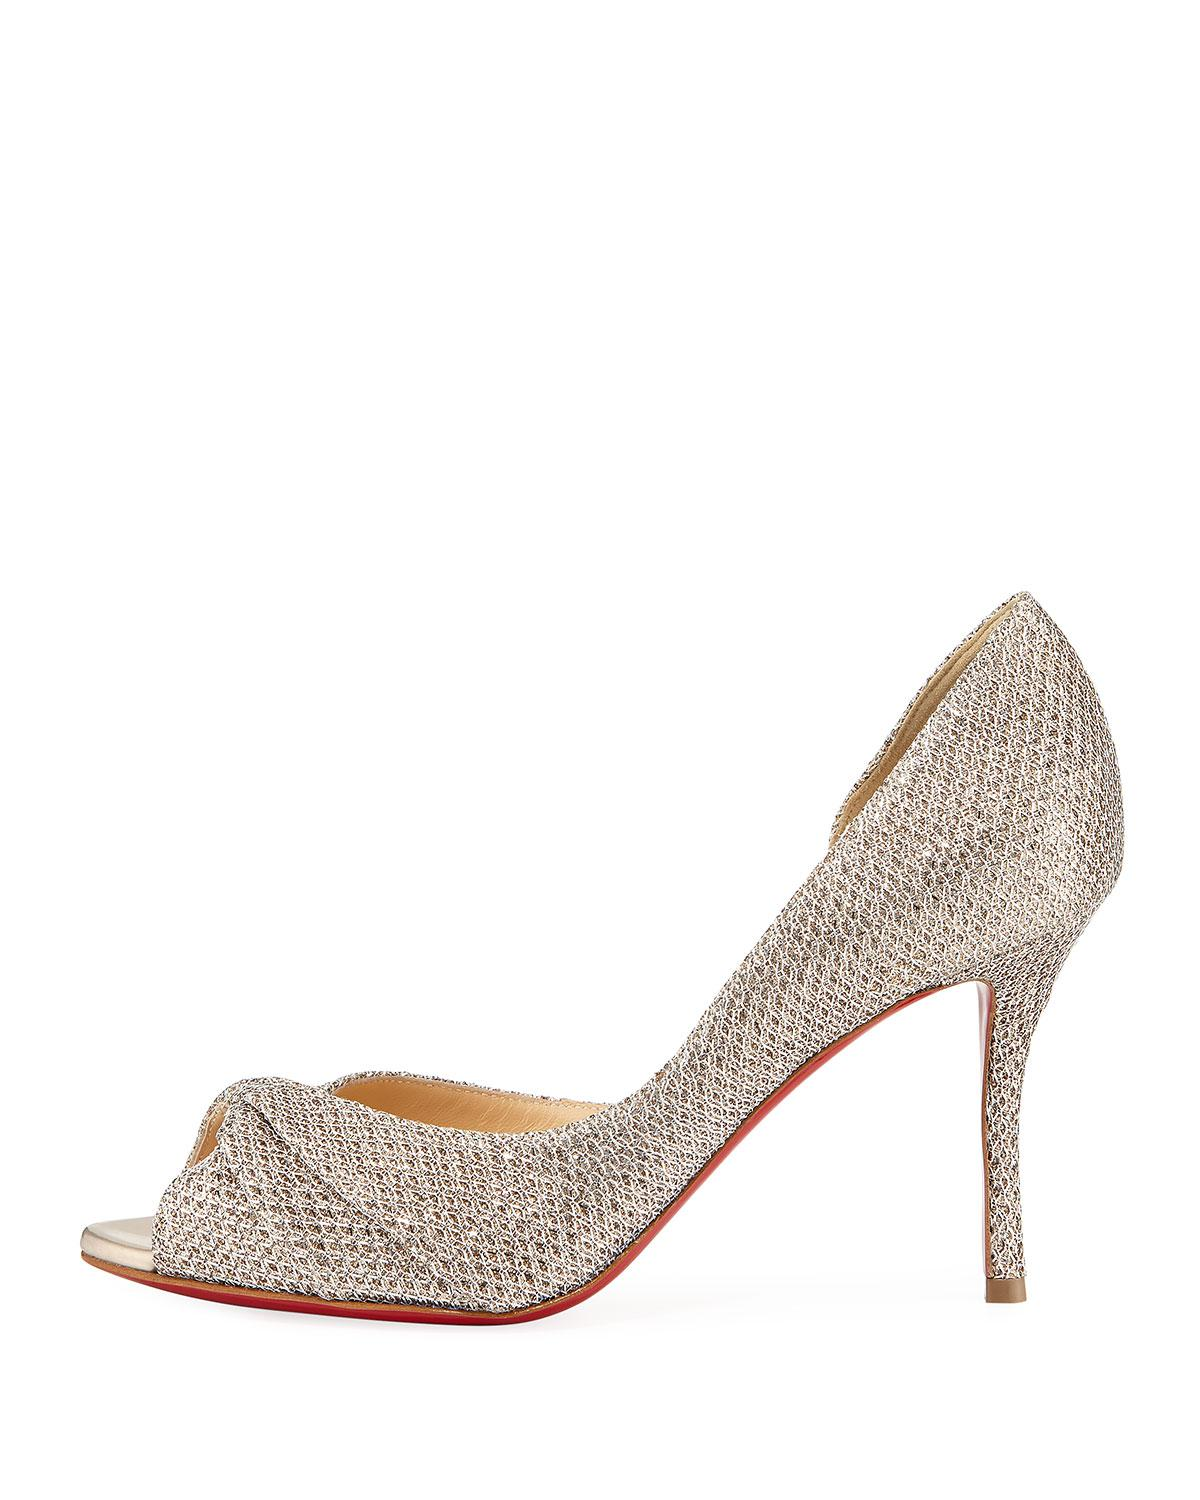 60555c5a137 ... italy lyst christian louboutin courvampa glitter red sole pump in  metallic 86e04 b85a3